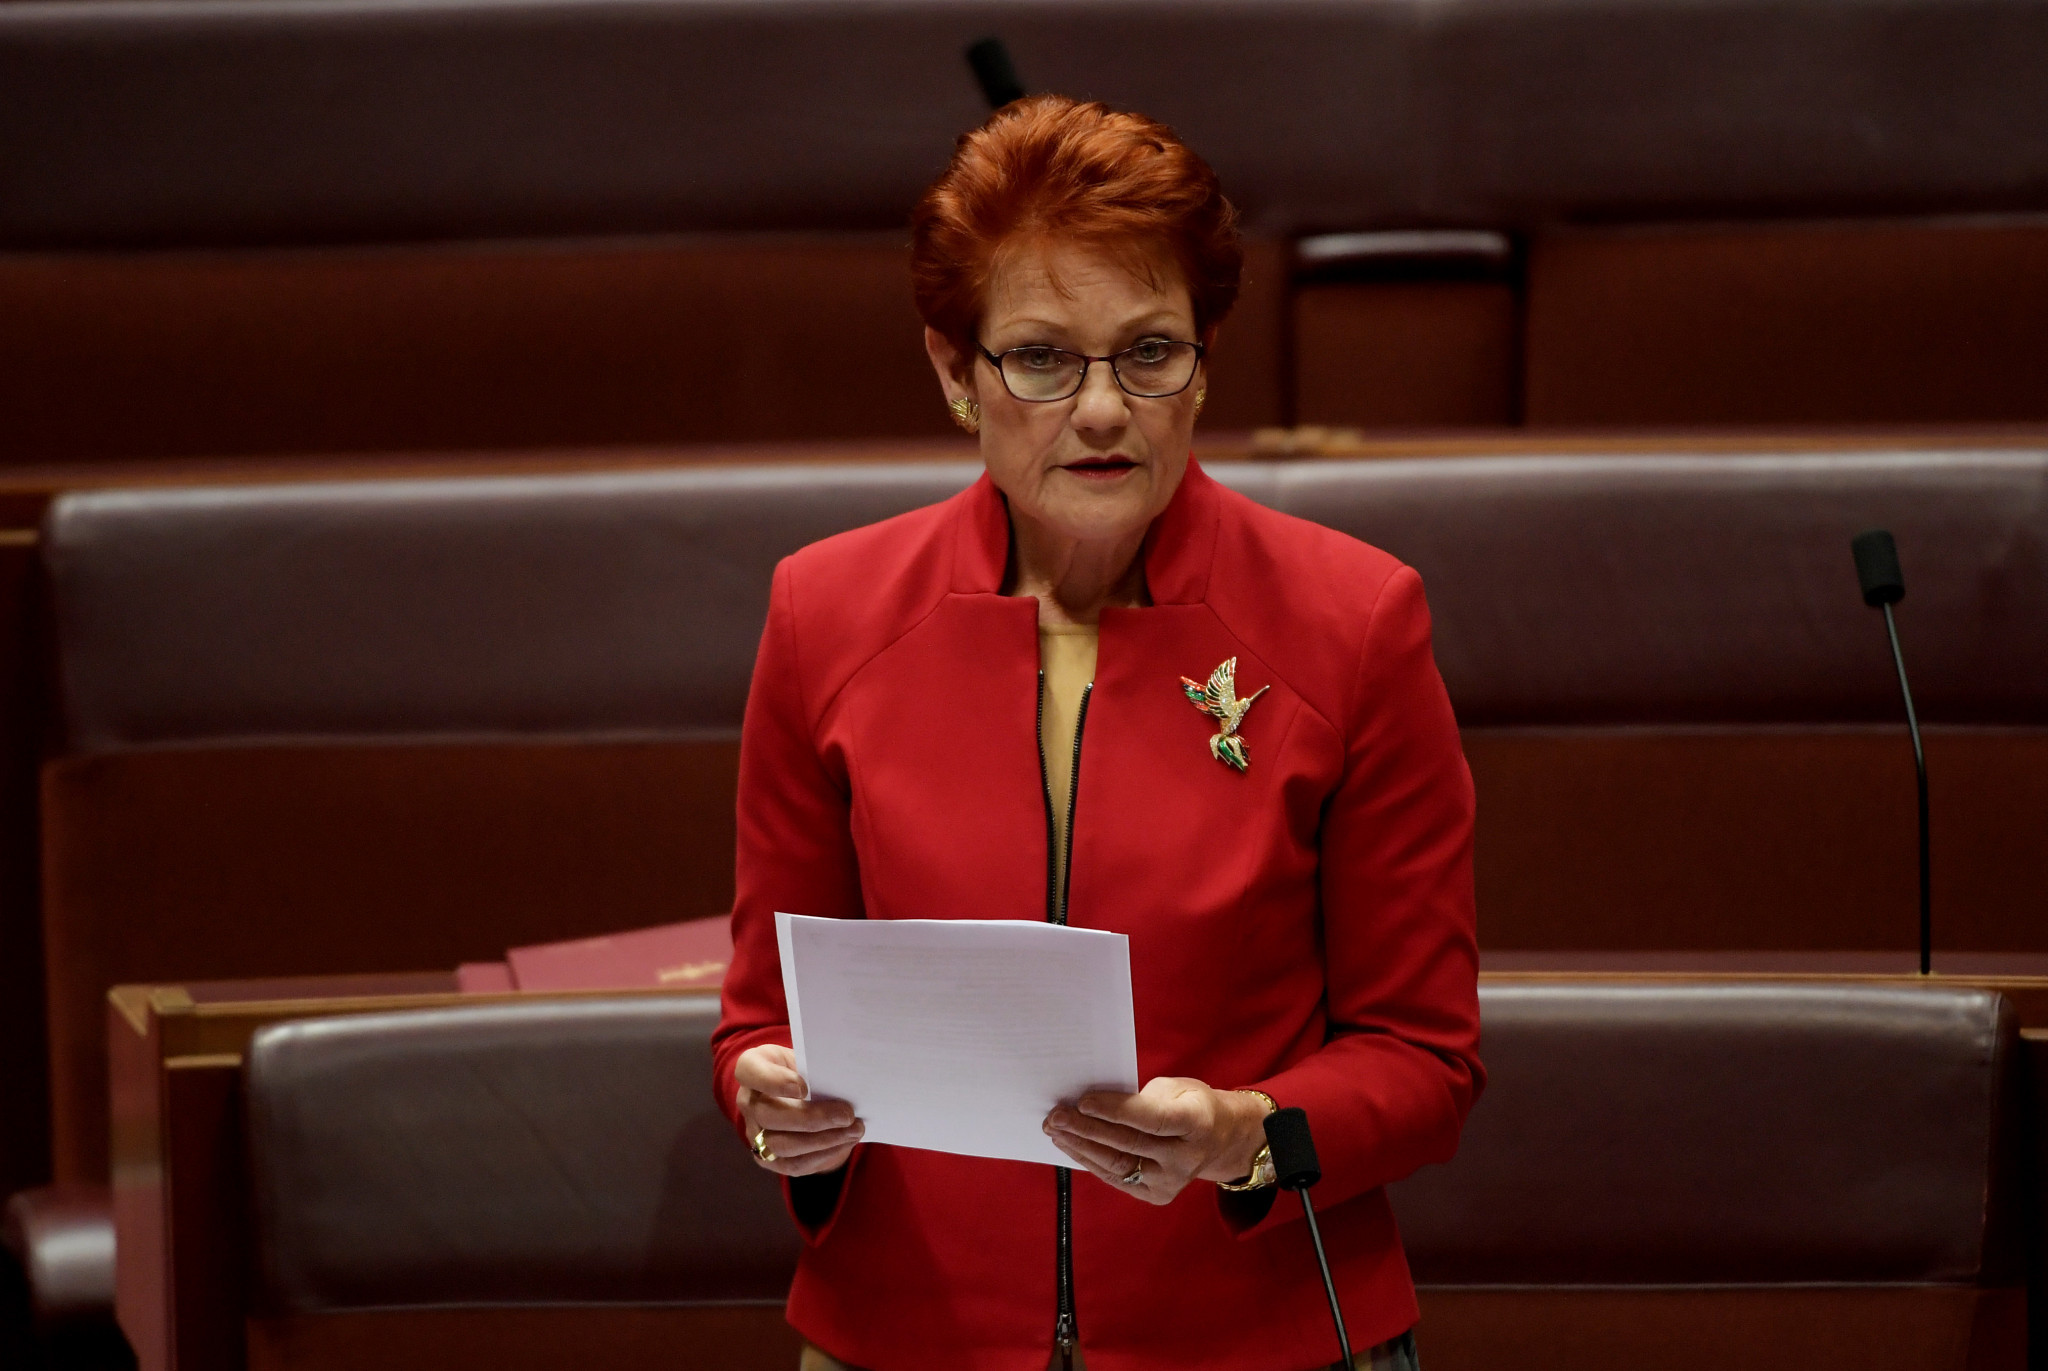 Controversial Australian politician Pauline Hanson has launched a campaign against Queensland's bid for the 2032 Olympic and Paralympic Games ©Getty Images